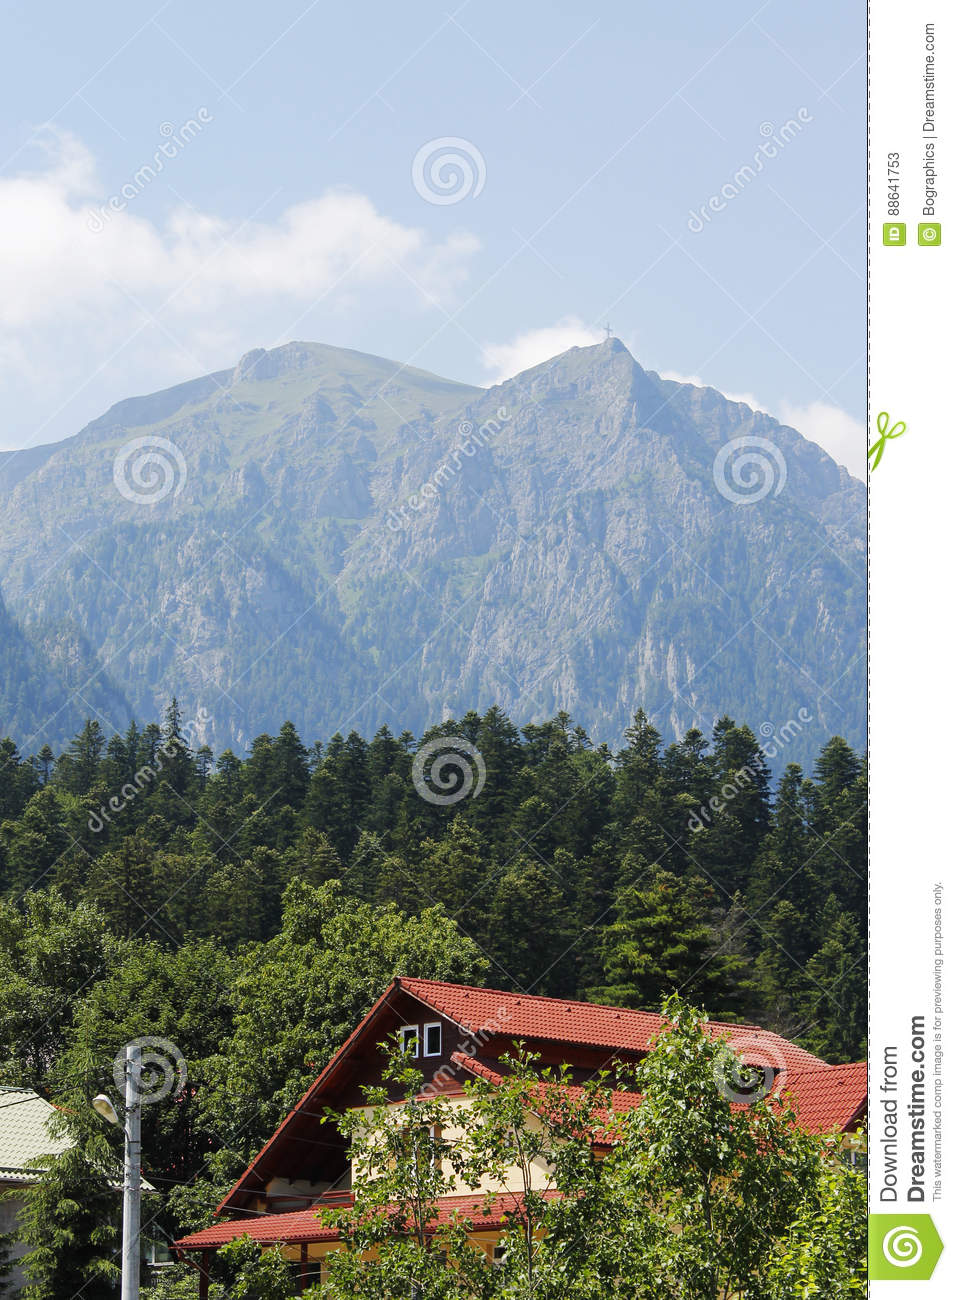 Big mountain with forest and house at bottom